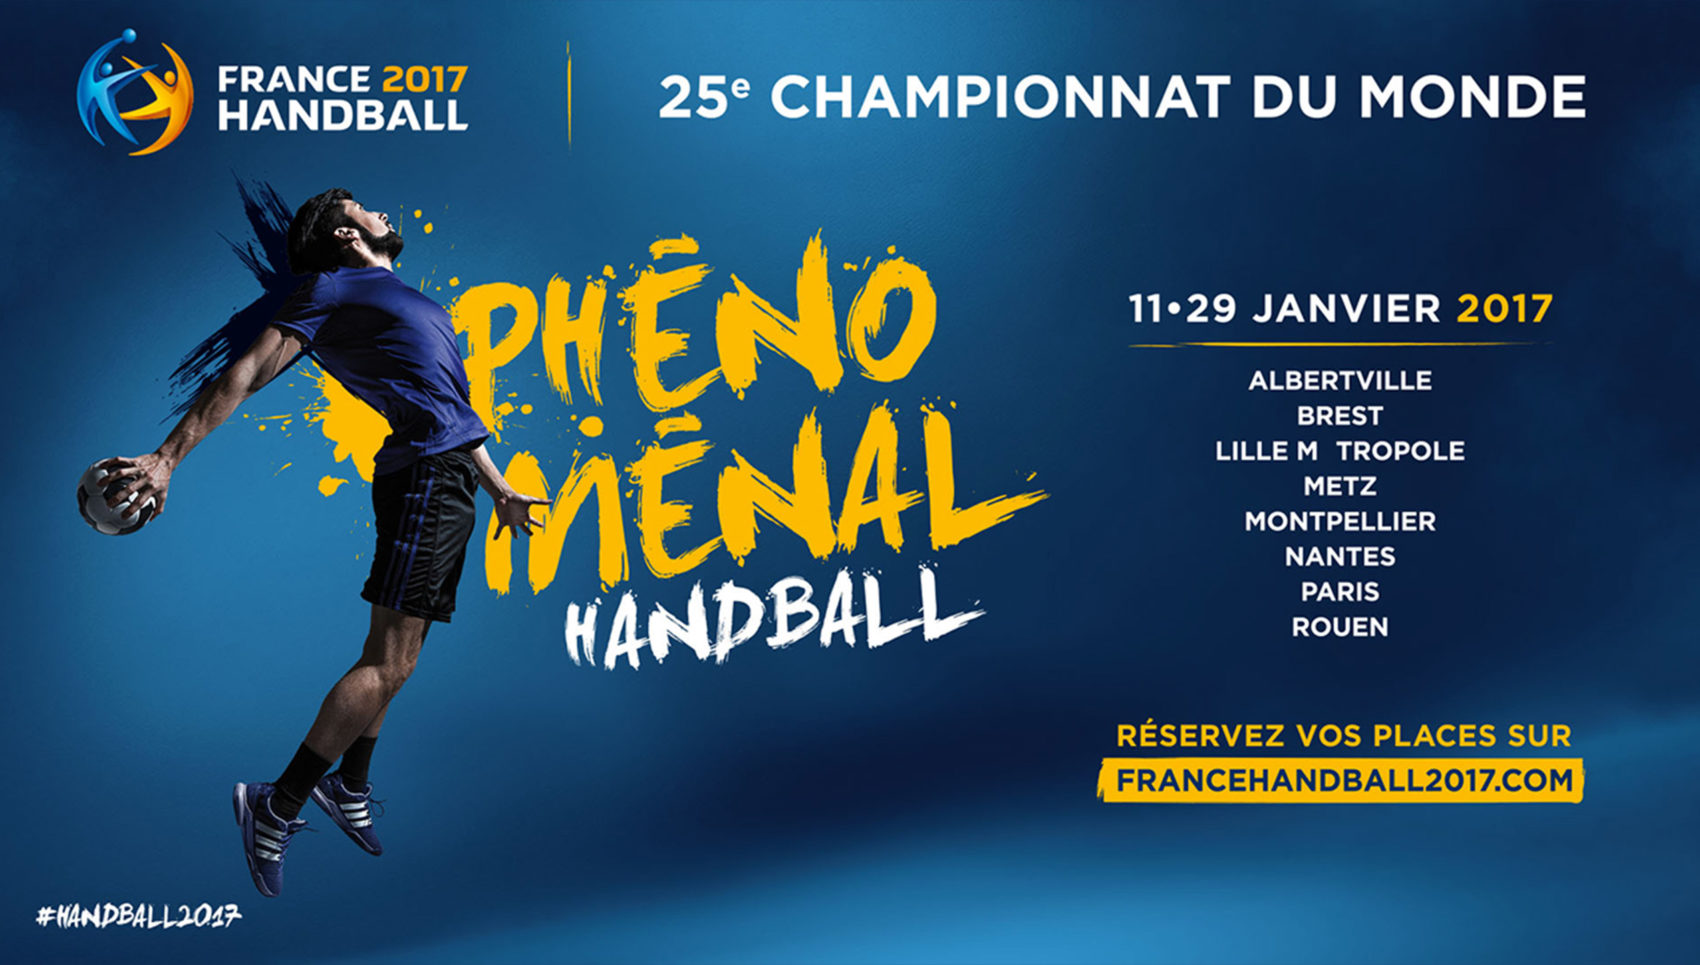 France_Handball_2017_key_visual_affiche